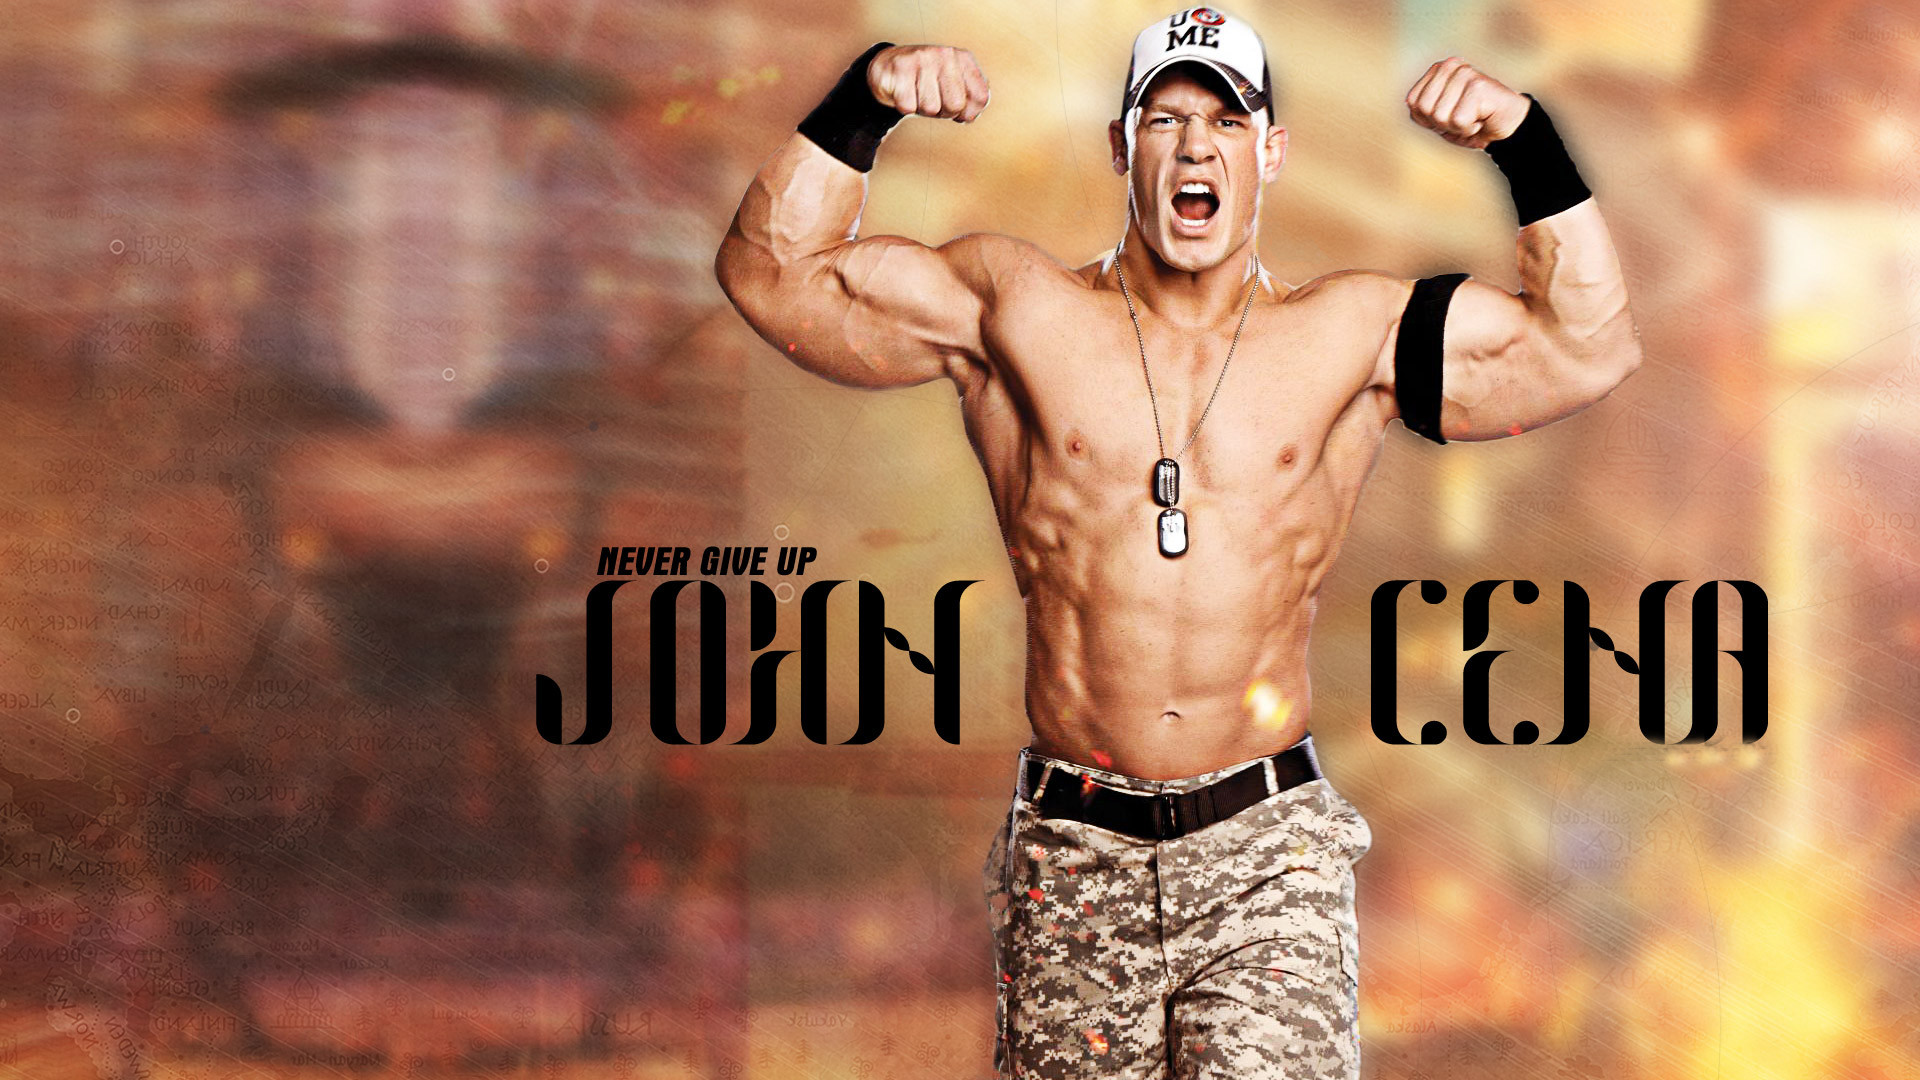 John Cena Full HD Wallpaper 1920x1080